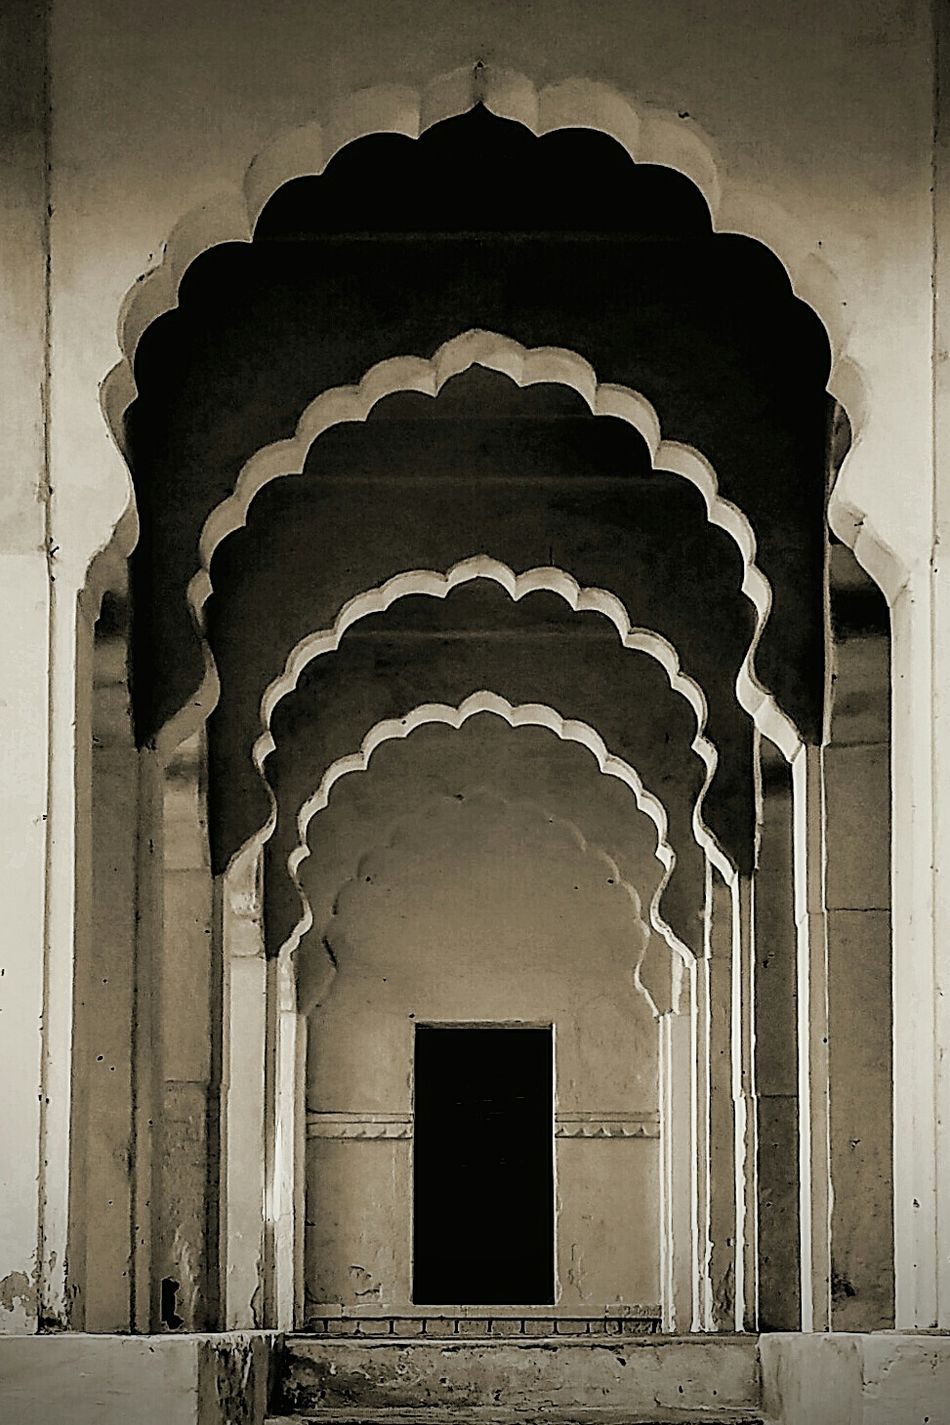 Arch No People Architecture Mughal Style Arch Photography Arches Large Residence Mehrangarh Fort